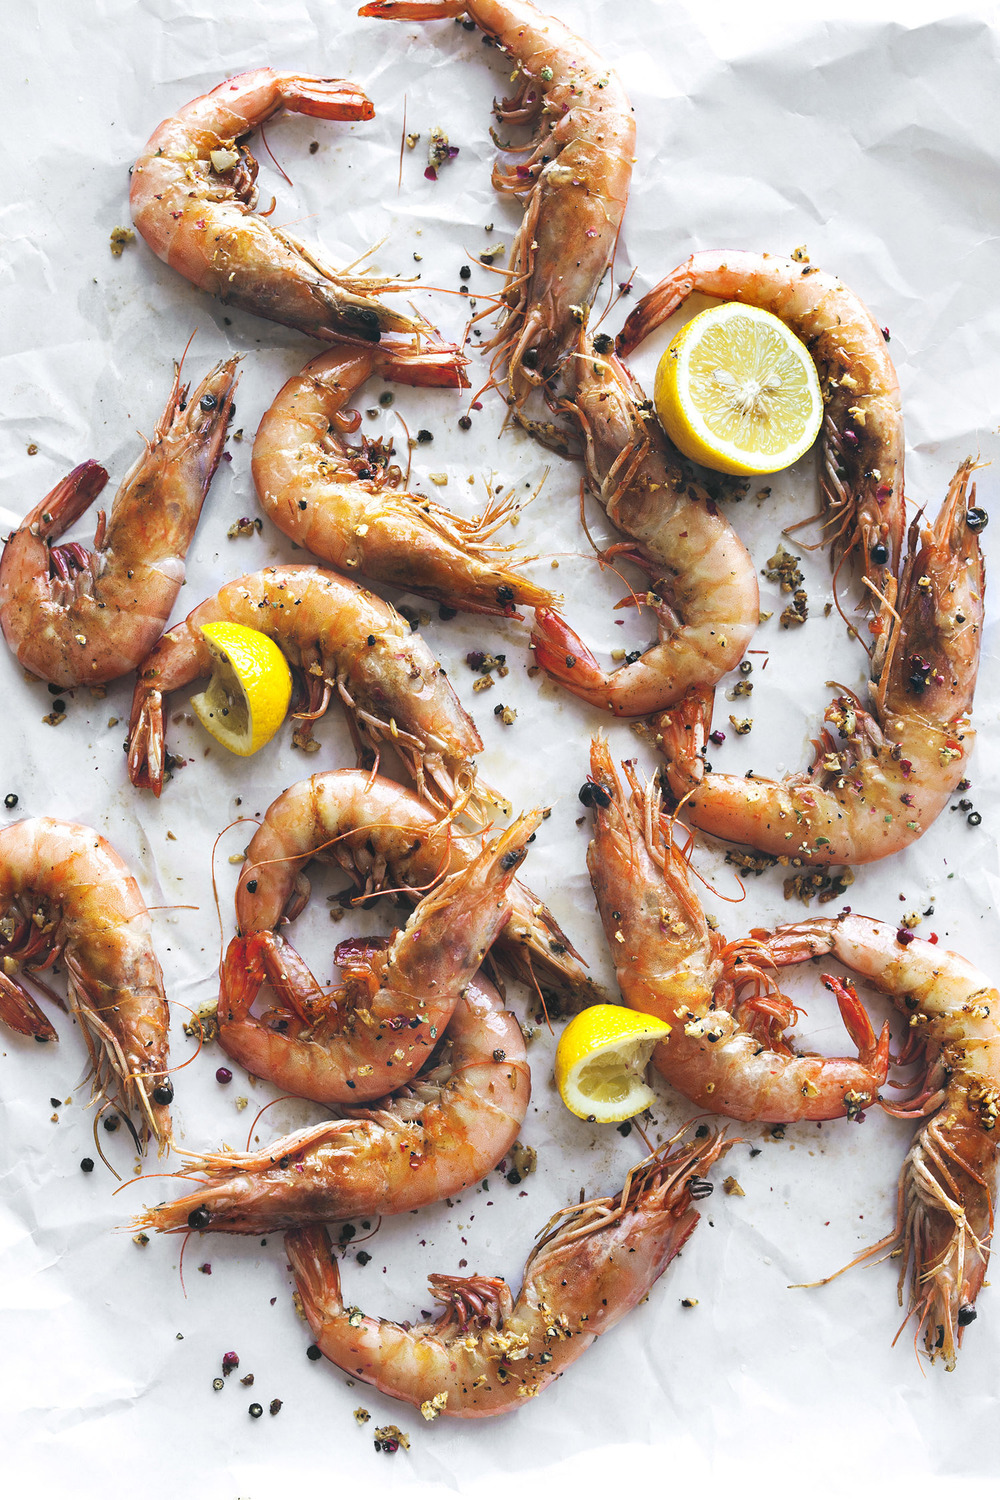 CookGoodFood-013-Shrimp_V1_final.jpg